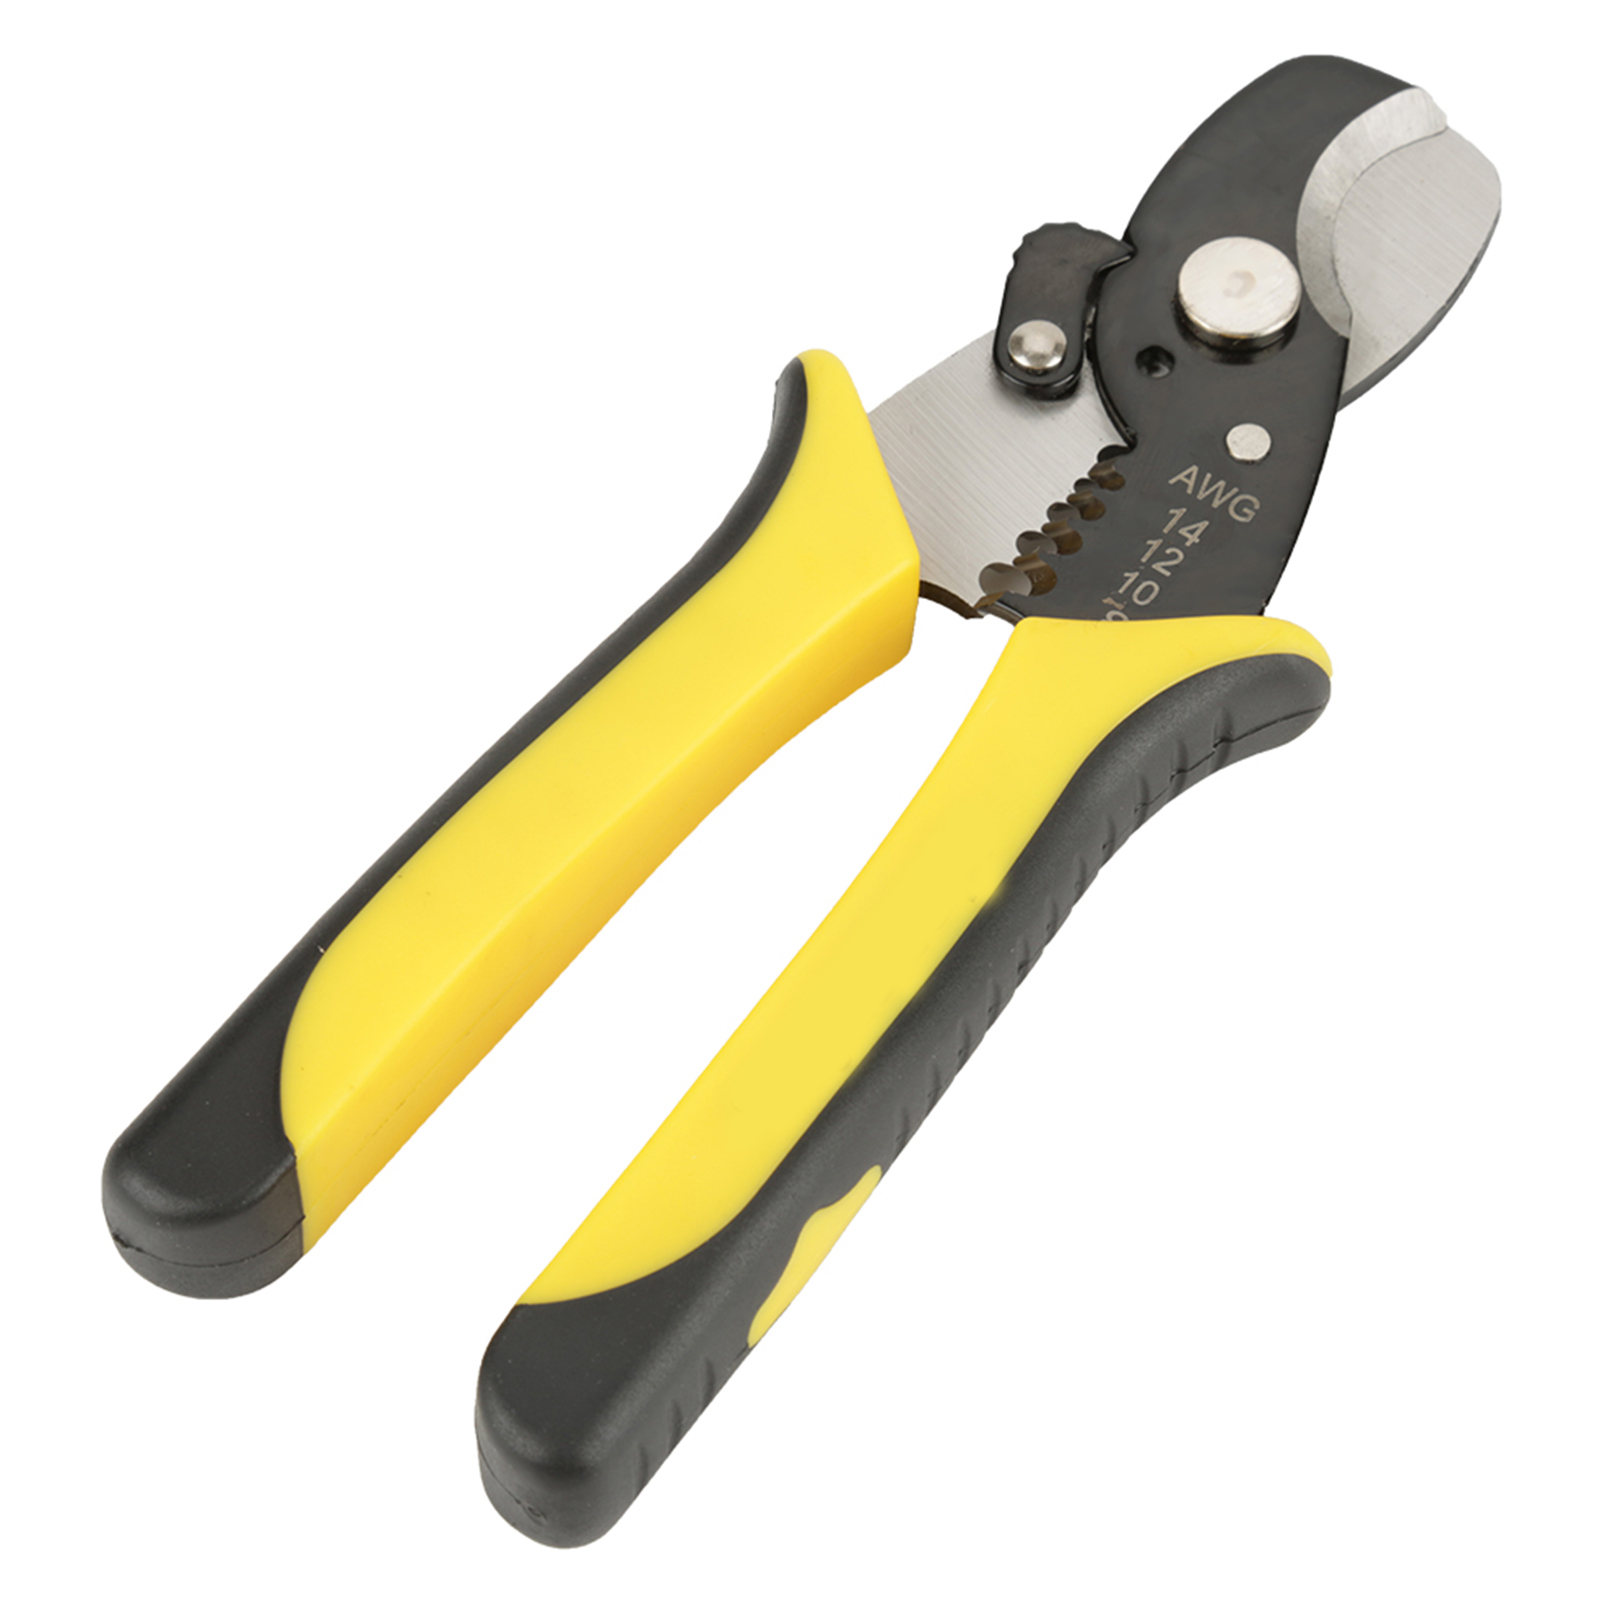 2 in 1 Cable Cutting Wire Stripper Pliers Electrical Tool for Electrician RT-6065 thumbnail